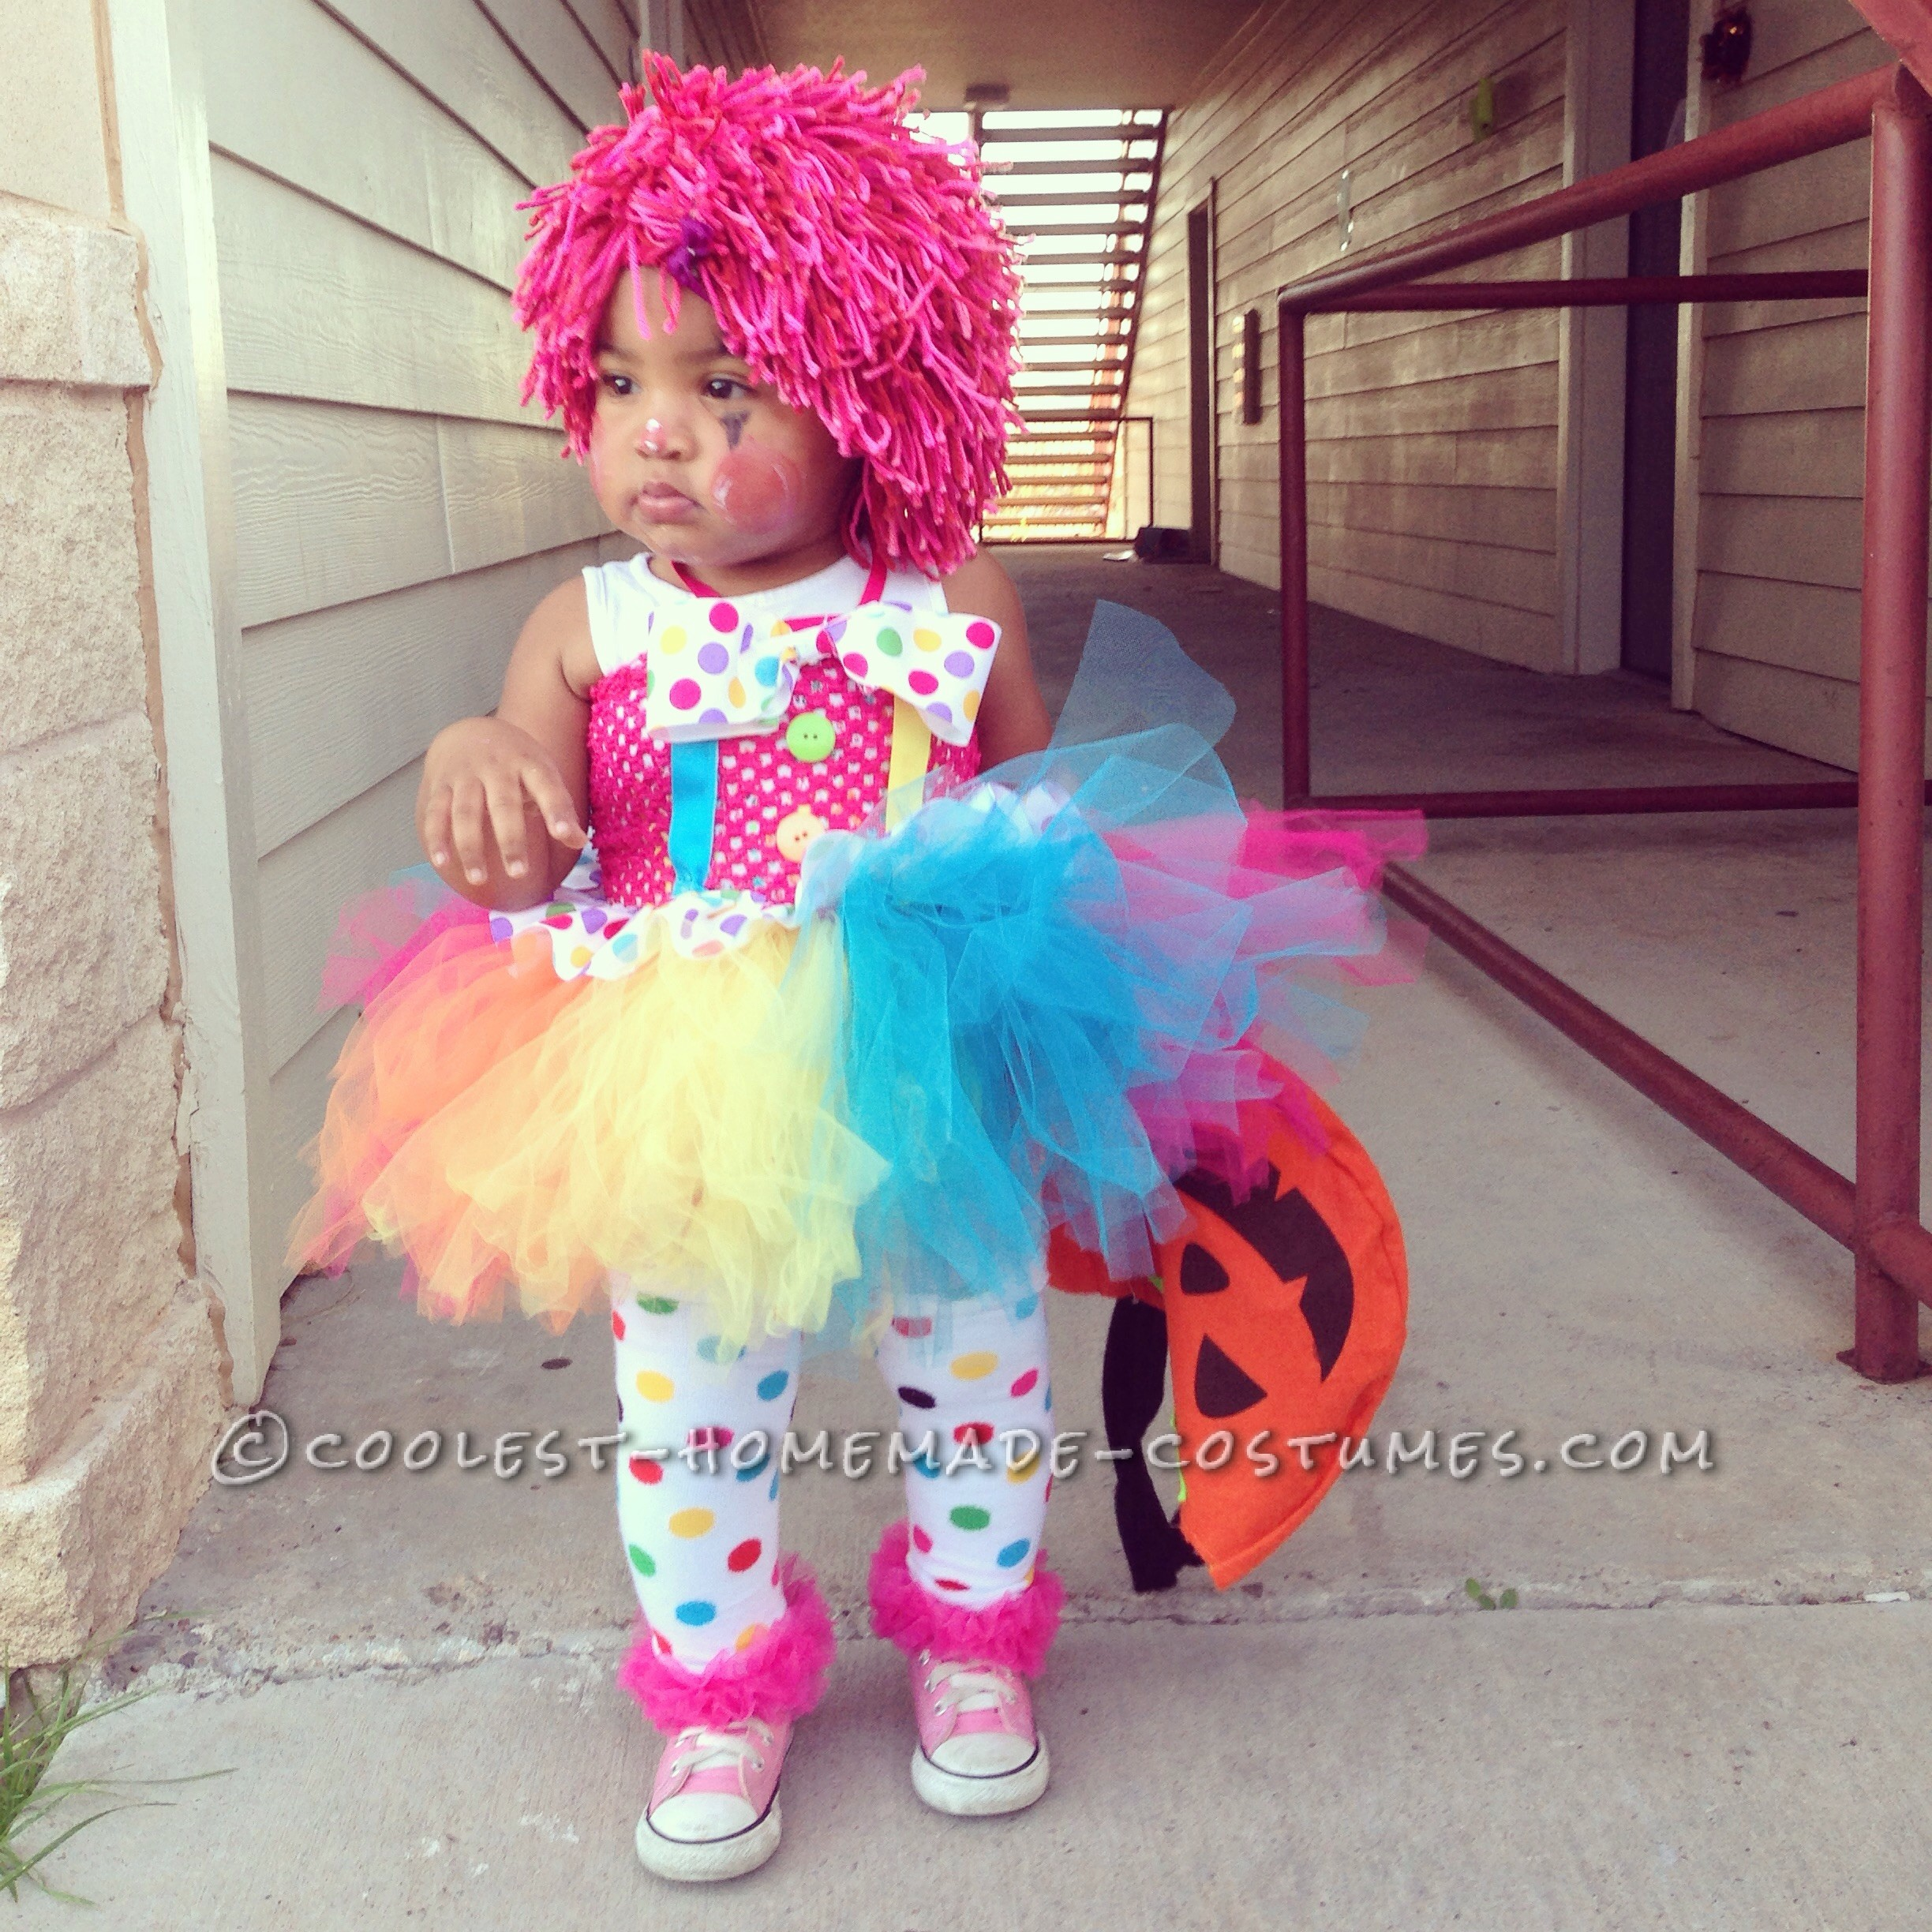 The Cutest Baby Clown Costume